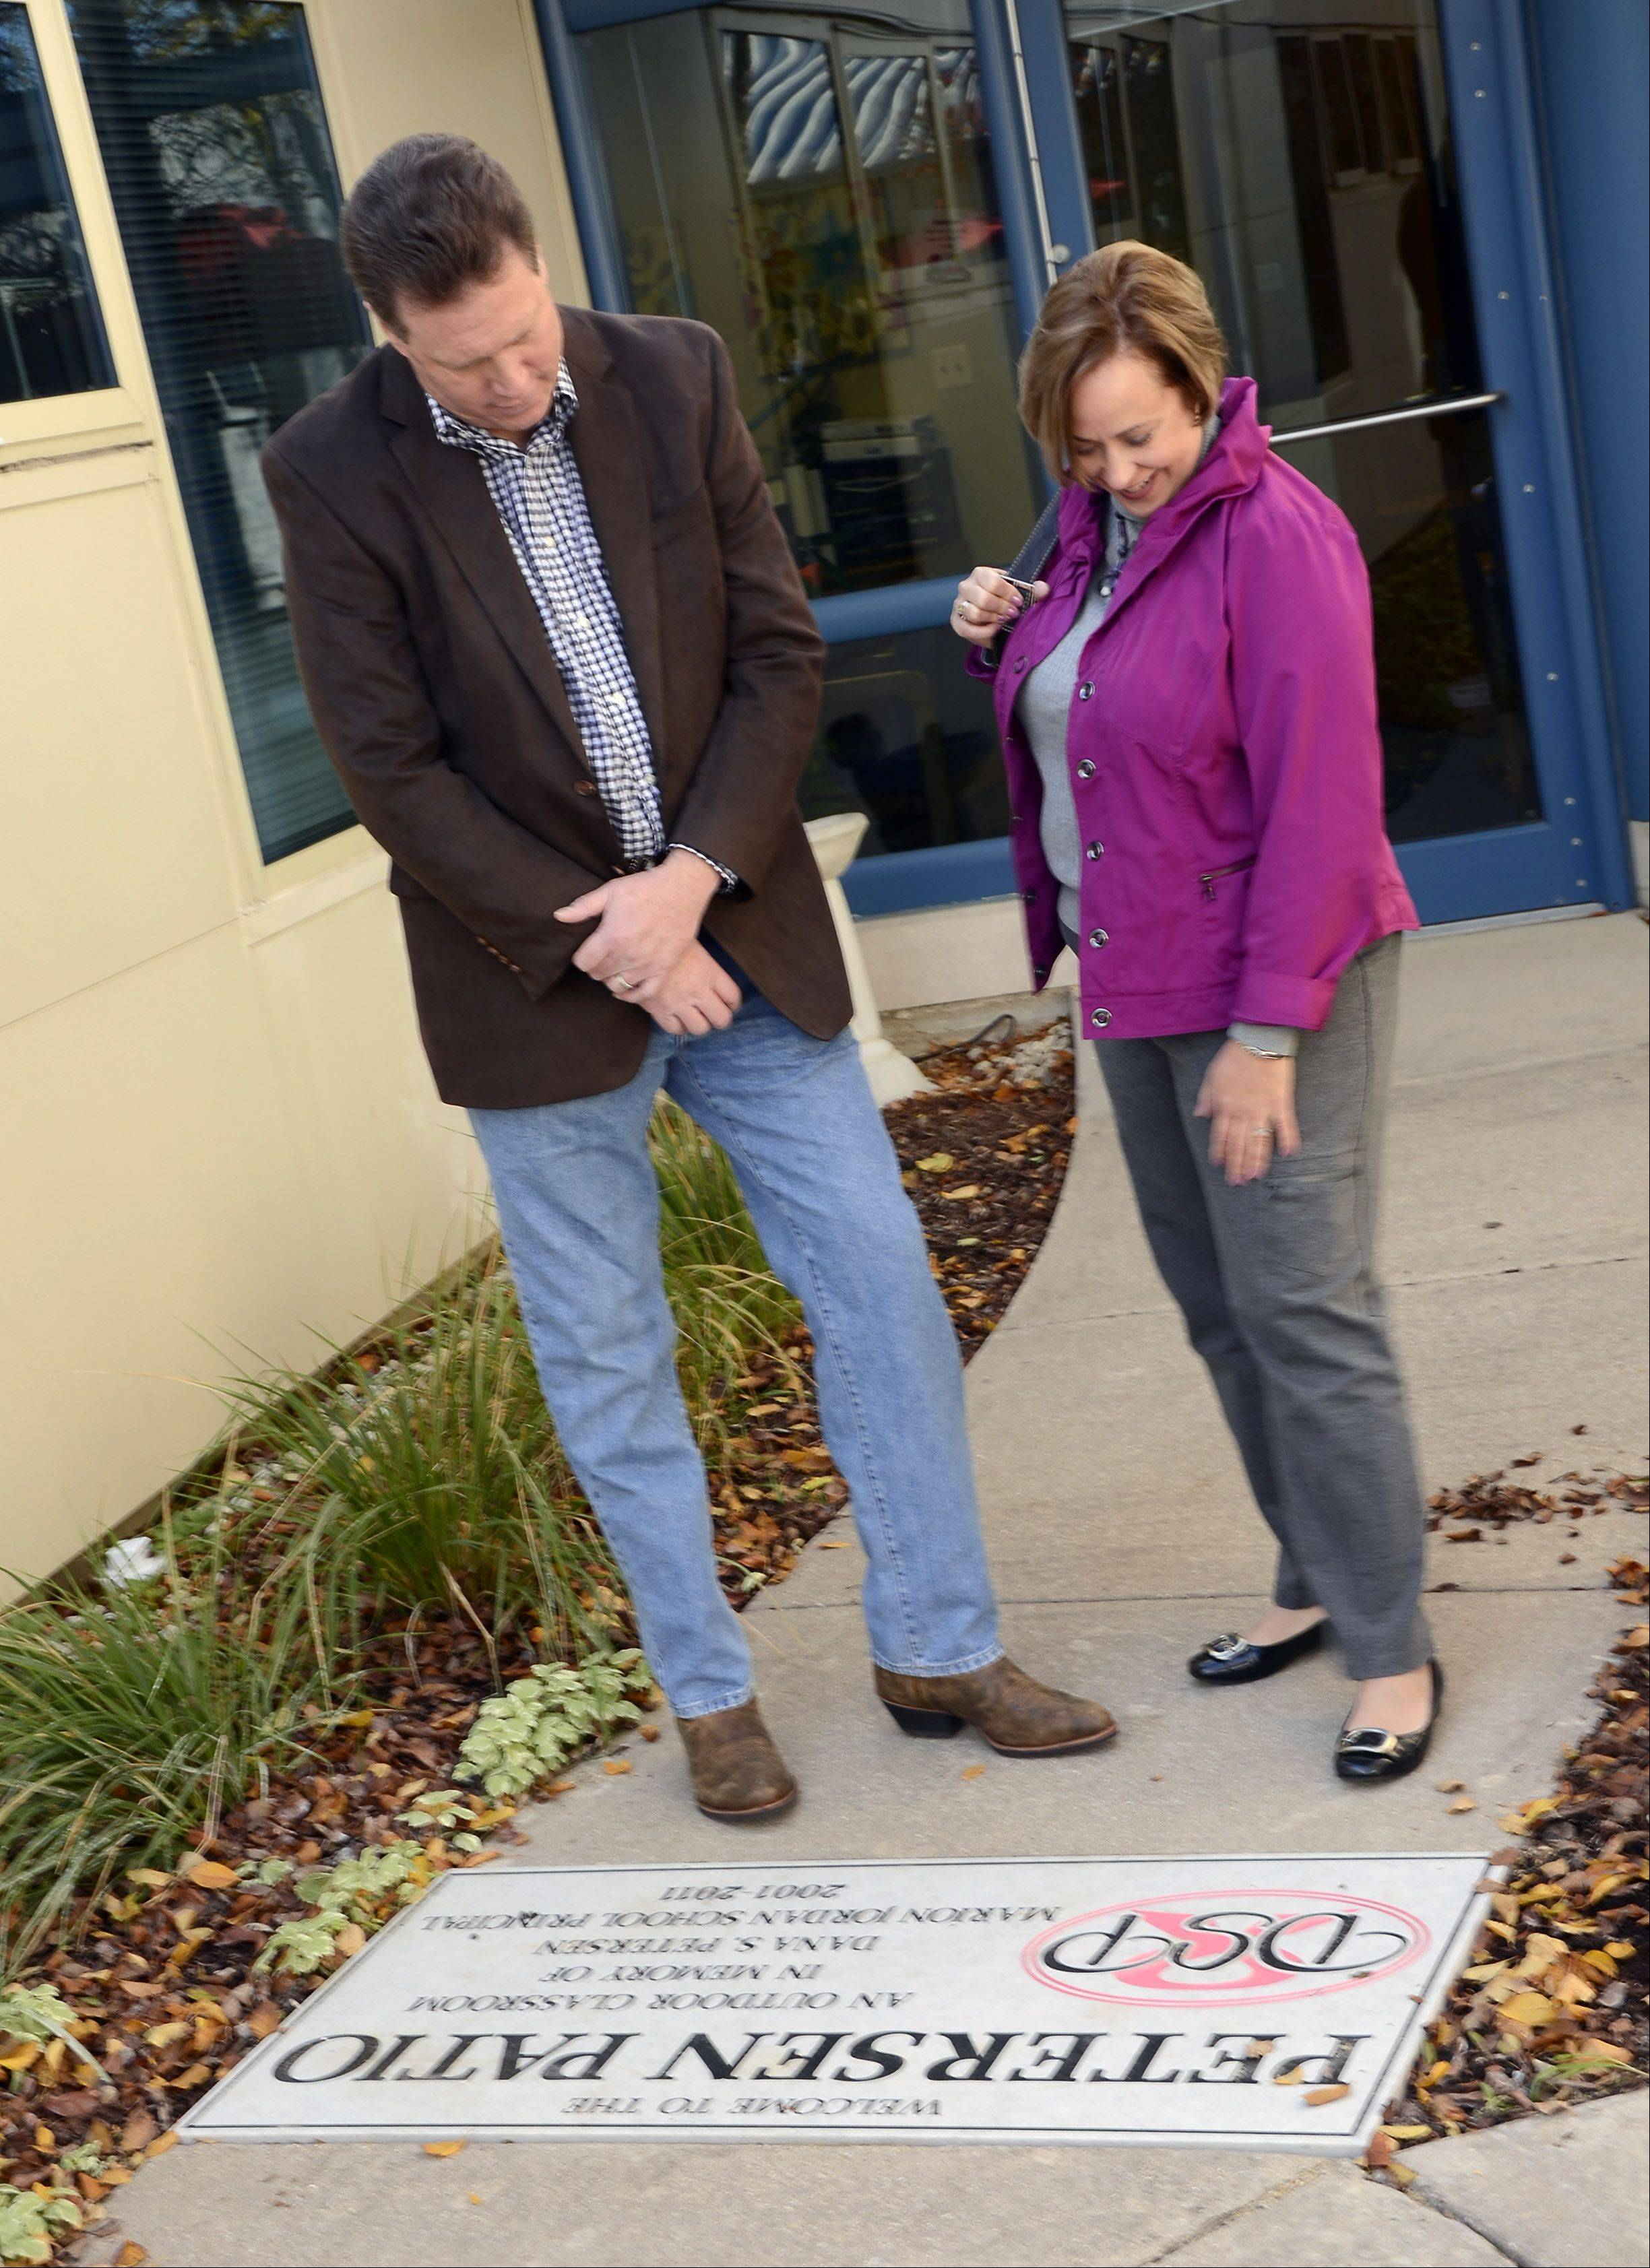 Dave Starr and his wife Karen Starr, of Wildwood, Mo., look at the plaque dedicated to his sister Dana Petersen's memory Monday at Marion Jordan School in Palatine. Petersen was the school's principal from 2001 to 2011.